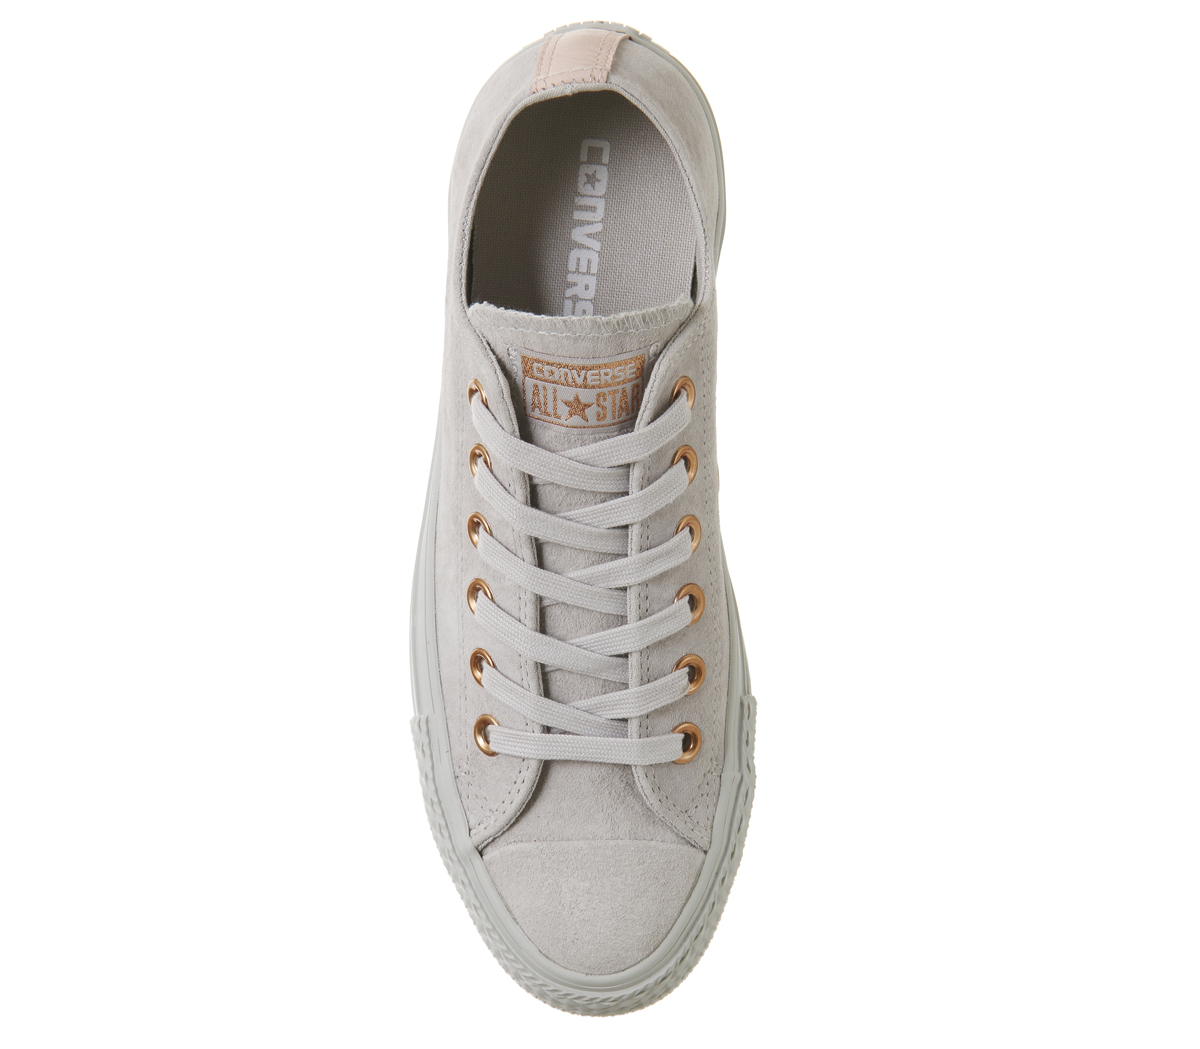 990ad3f8df8 Sentinel Womens Converse All Star Low Leather Trainers MOUSE VAPOUR PINK  EXCLUSIVE Traine